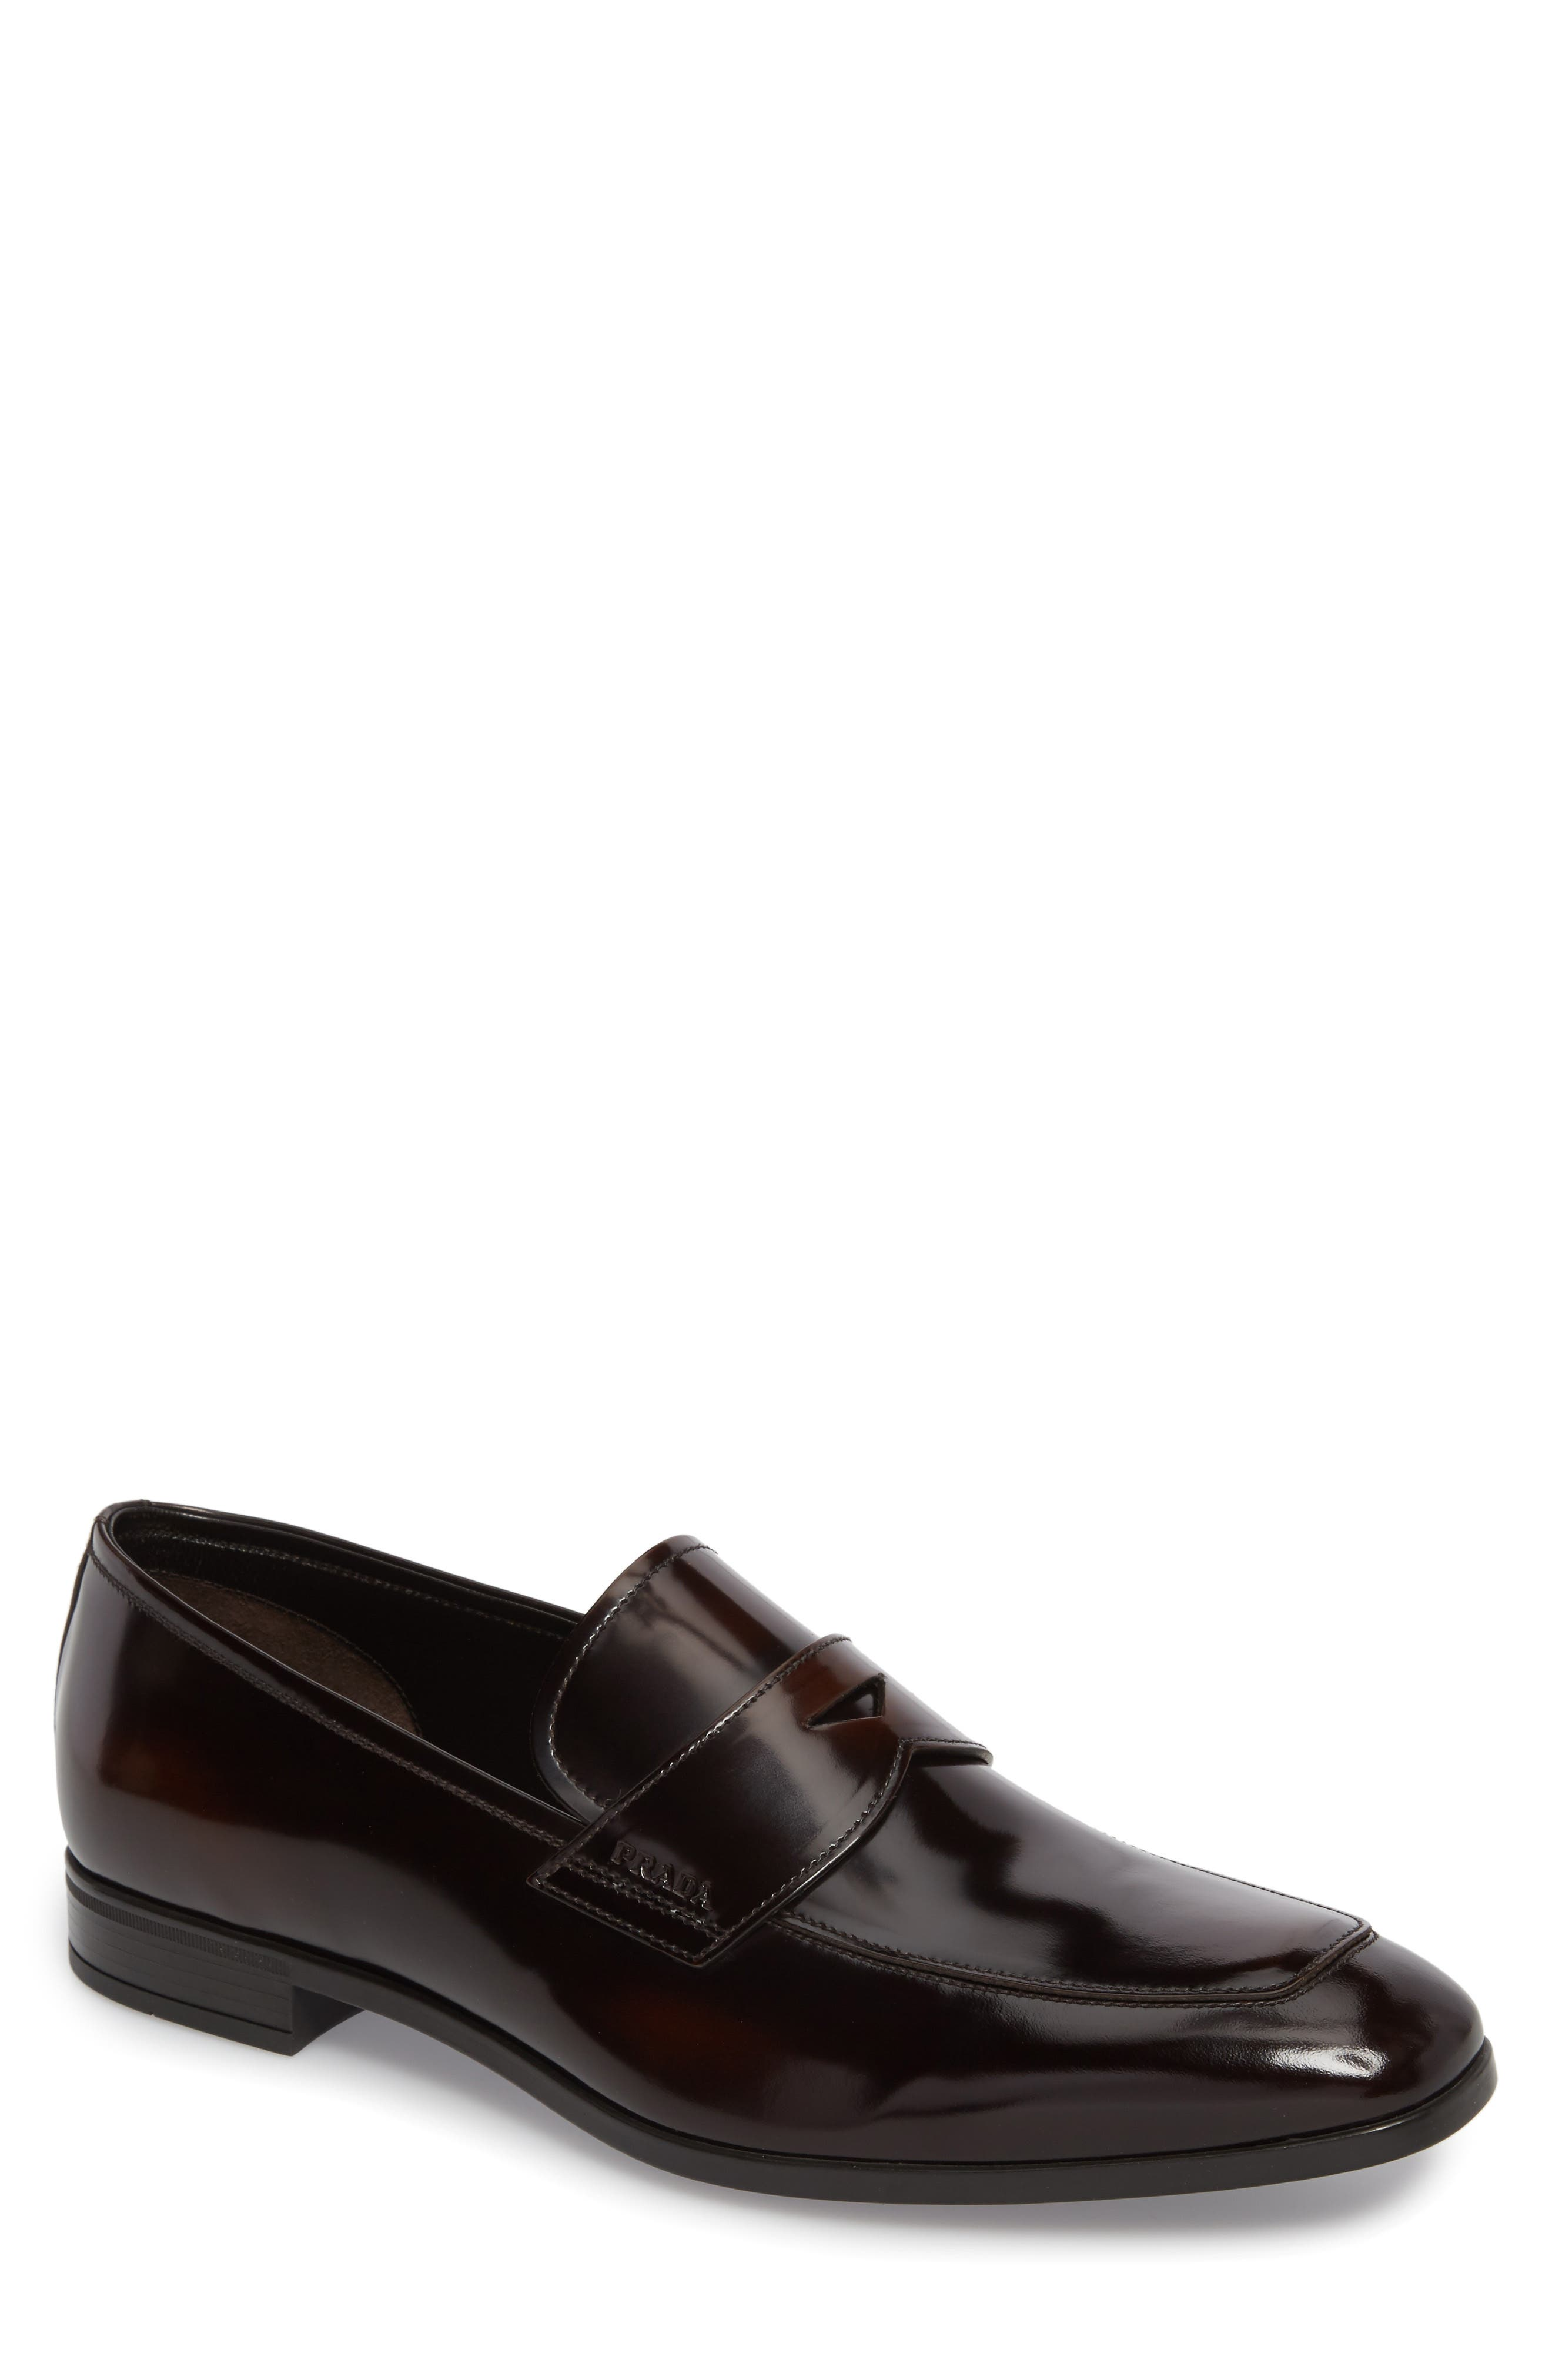 Alternate Image 1 Selected - Prada Penny Loafer (Men)